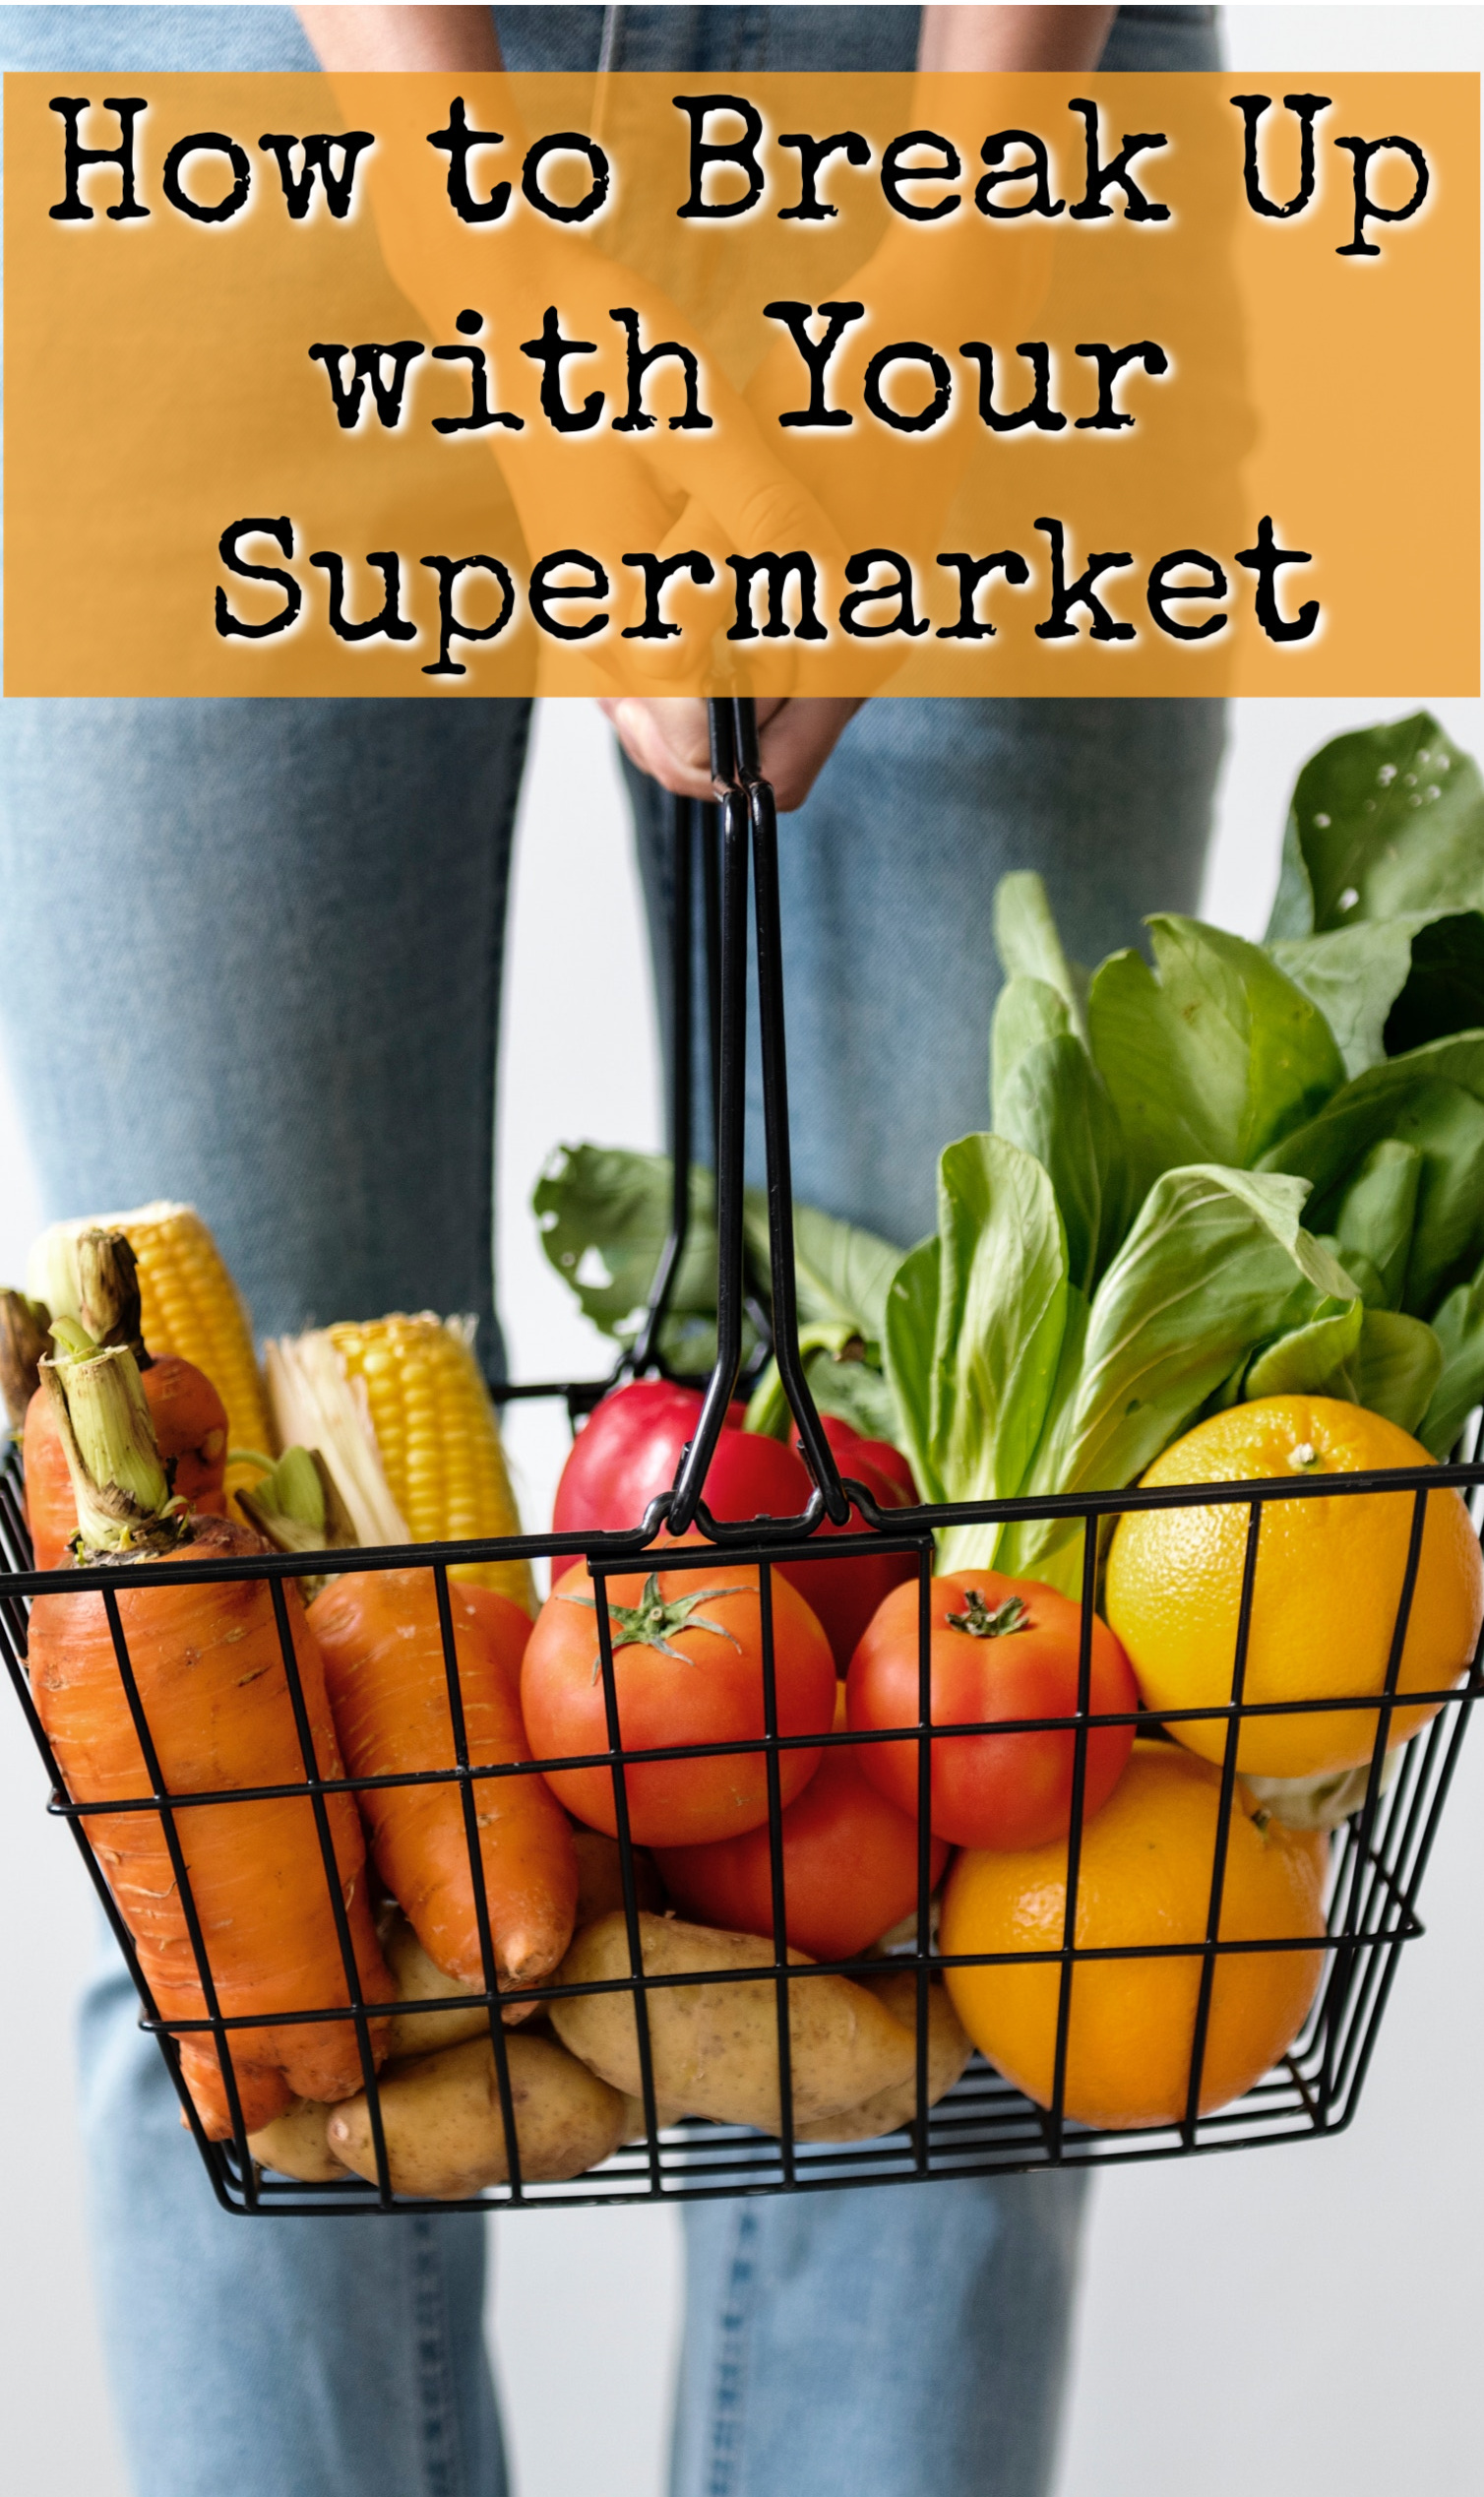 Learn the best way to break up with your Supermarket!